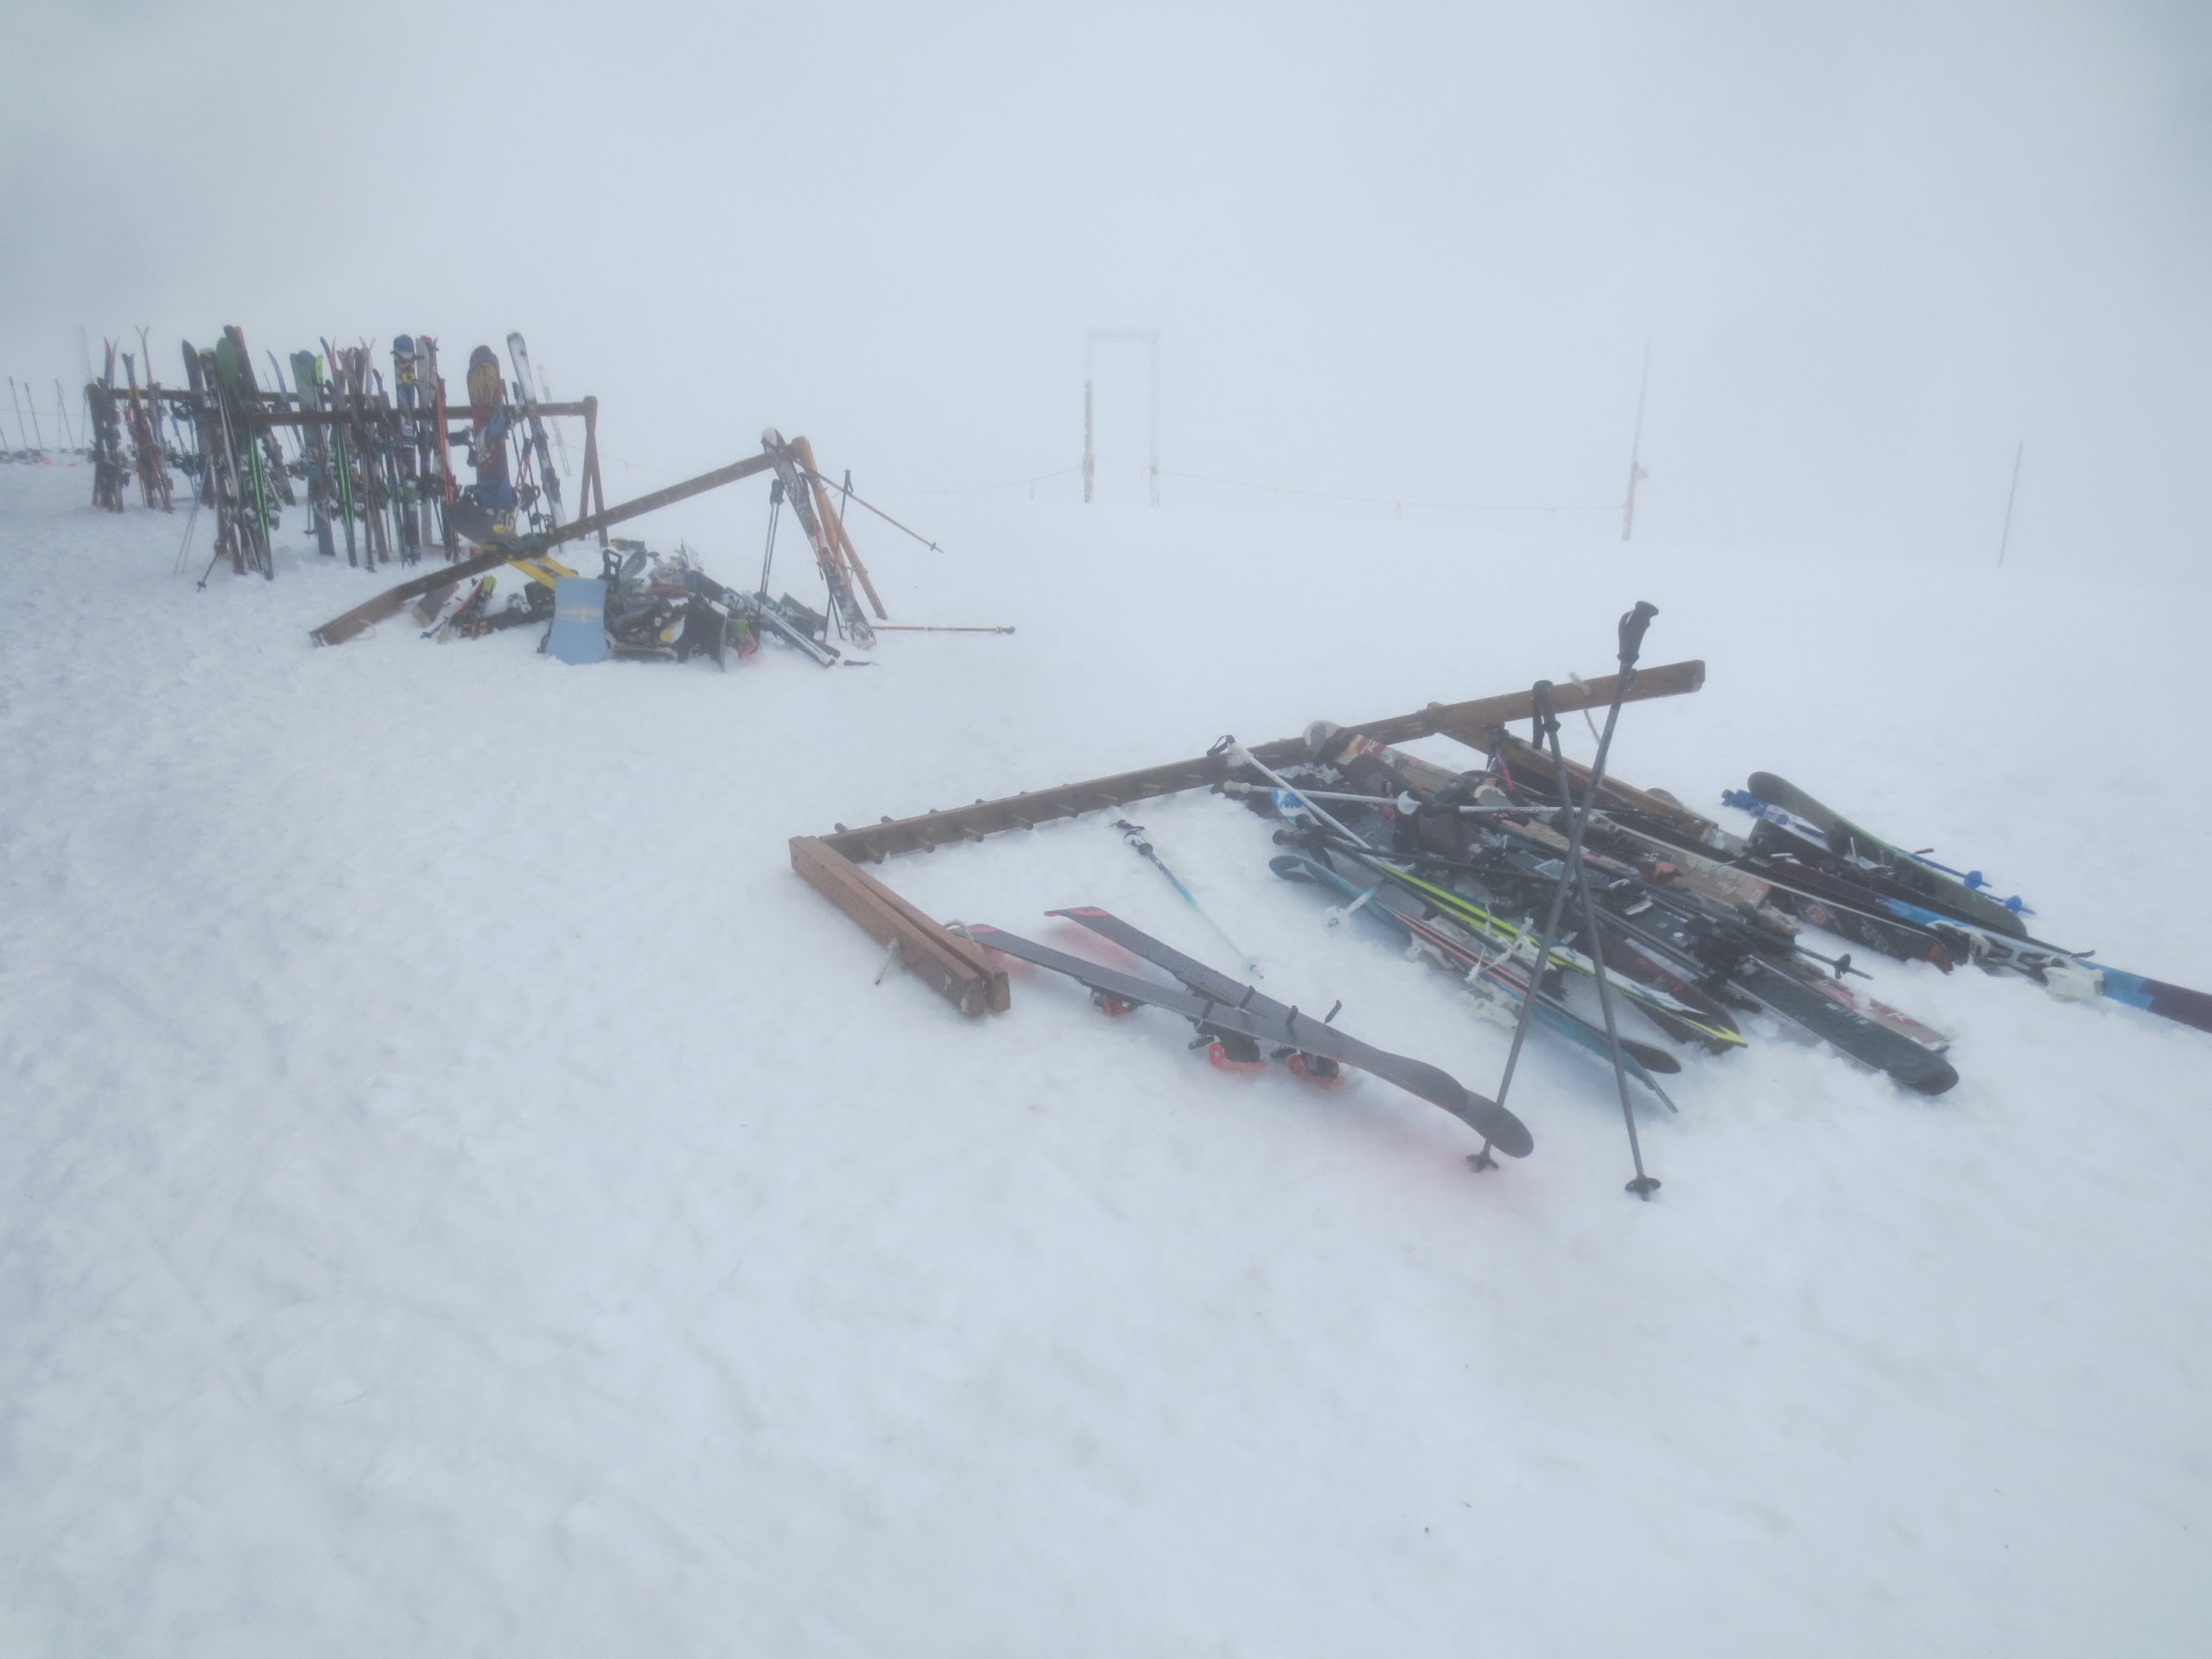 ski racks in the snow, with the two in the foreground blown over onto the ground